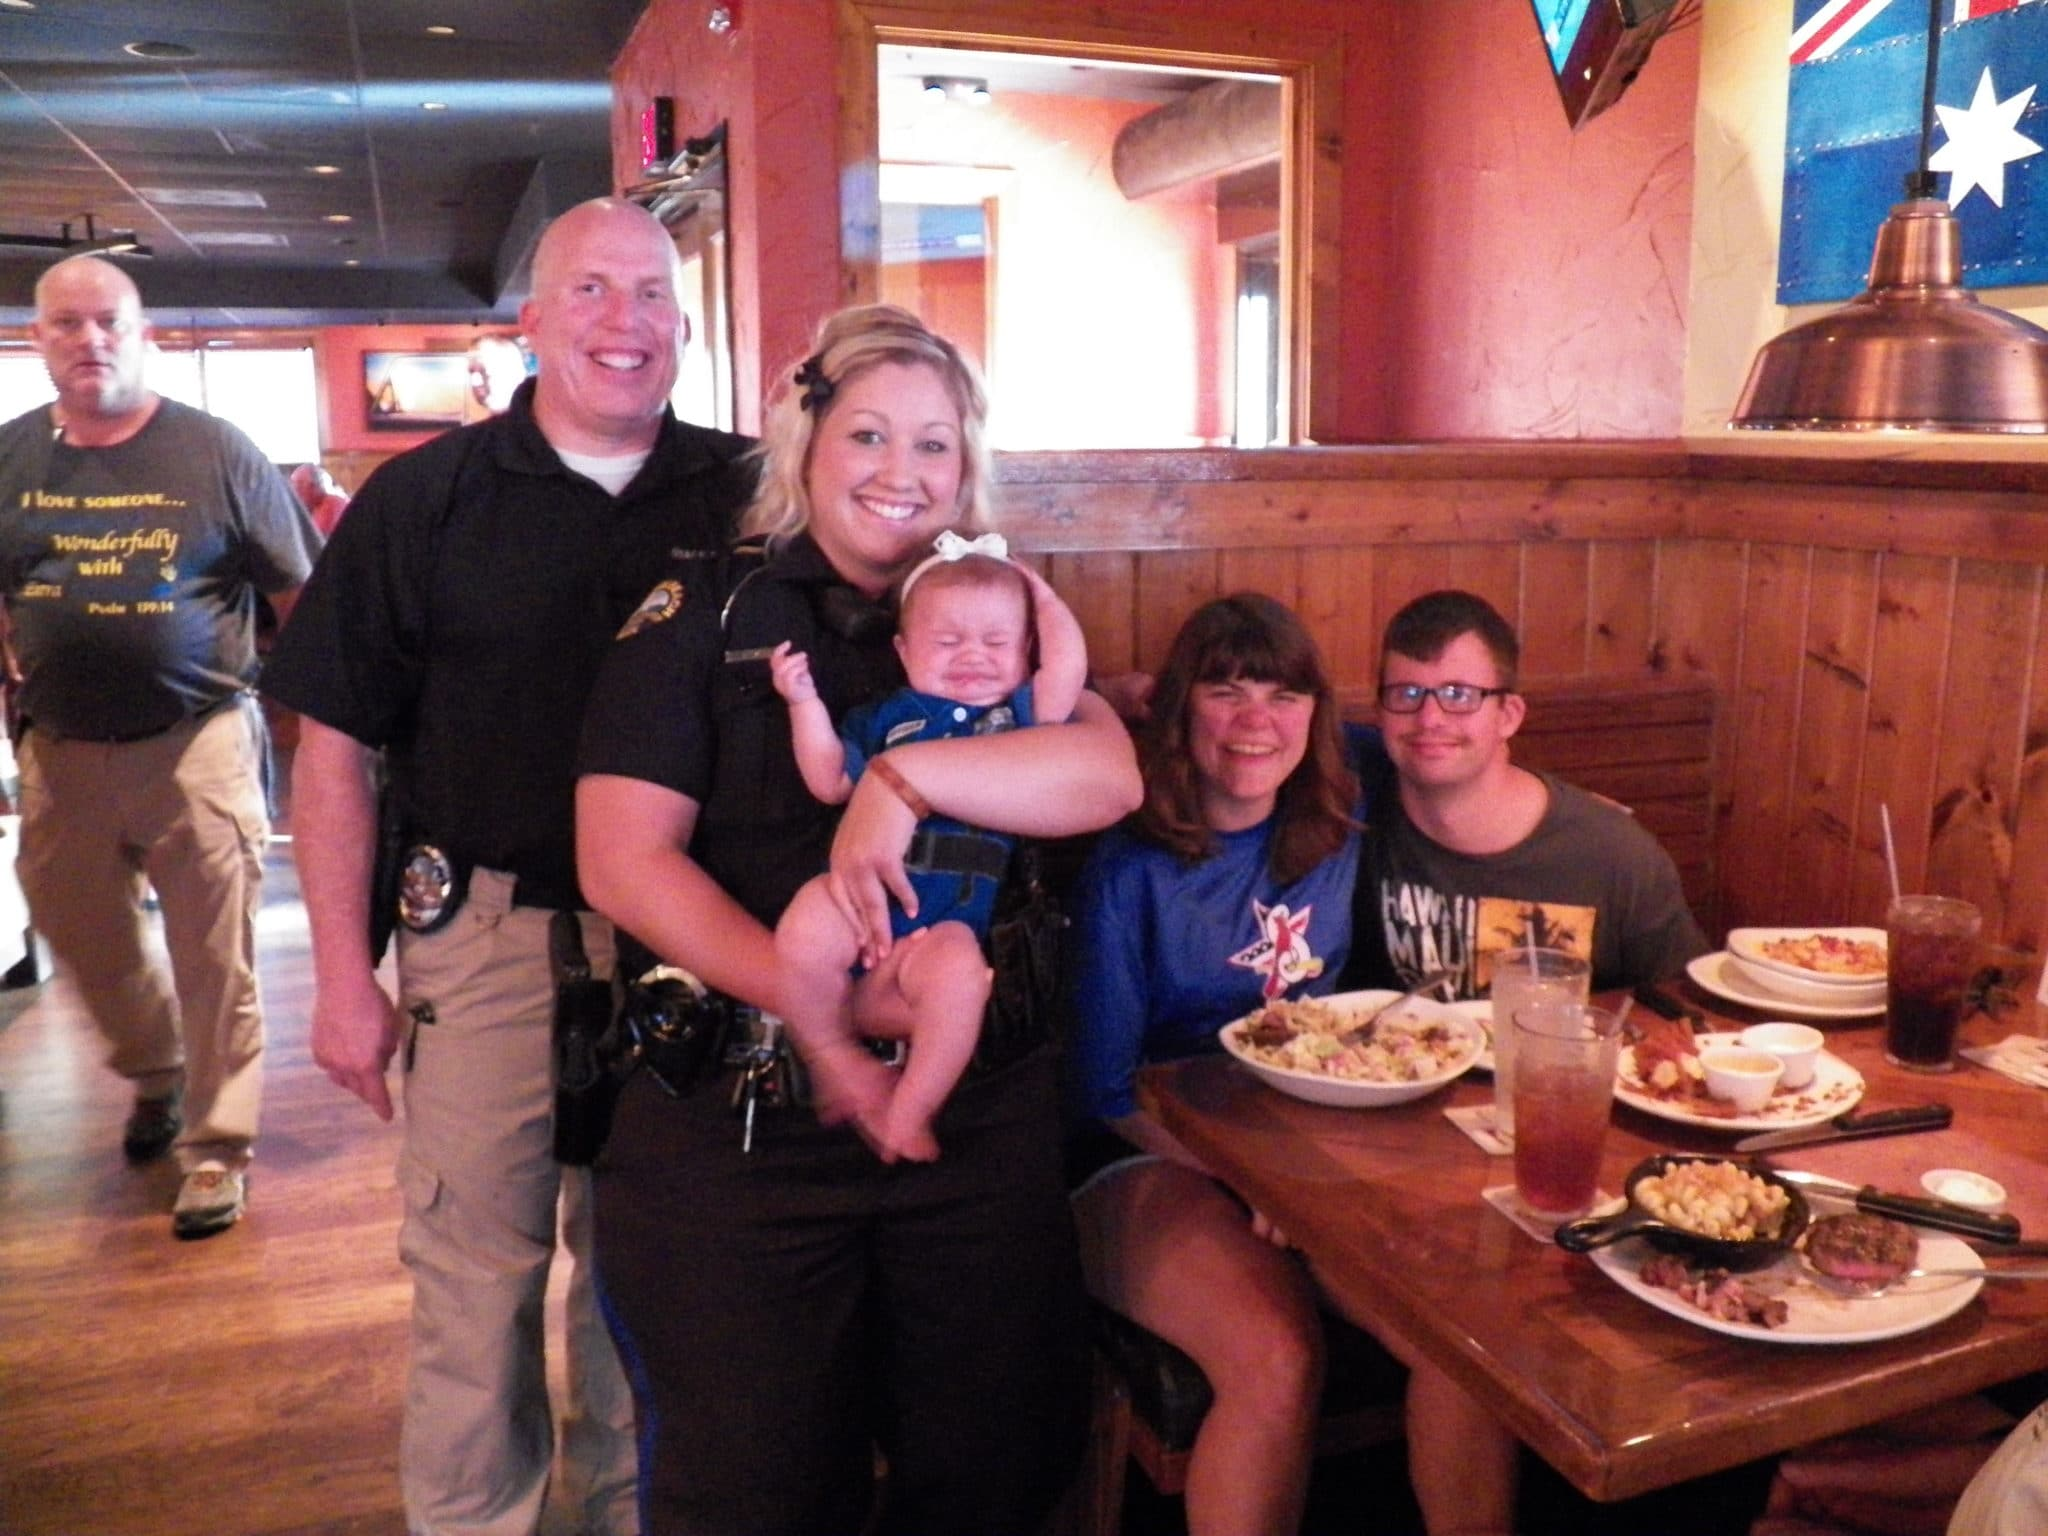 Two law enforcement officers hold a crying baby in a restaurant